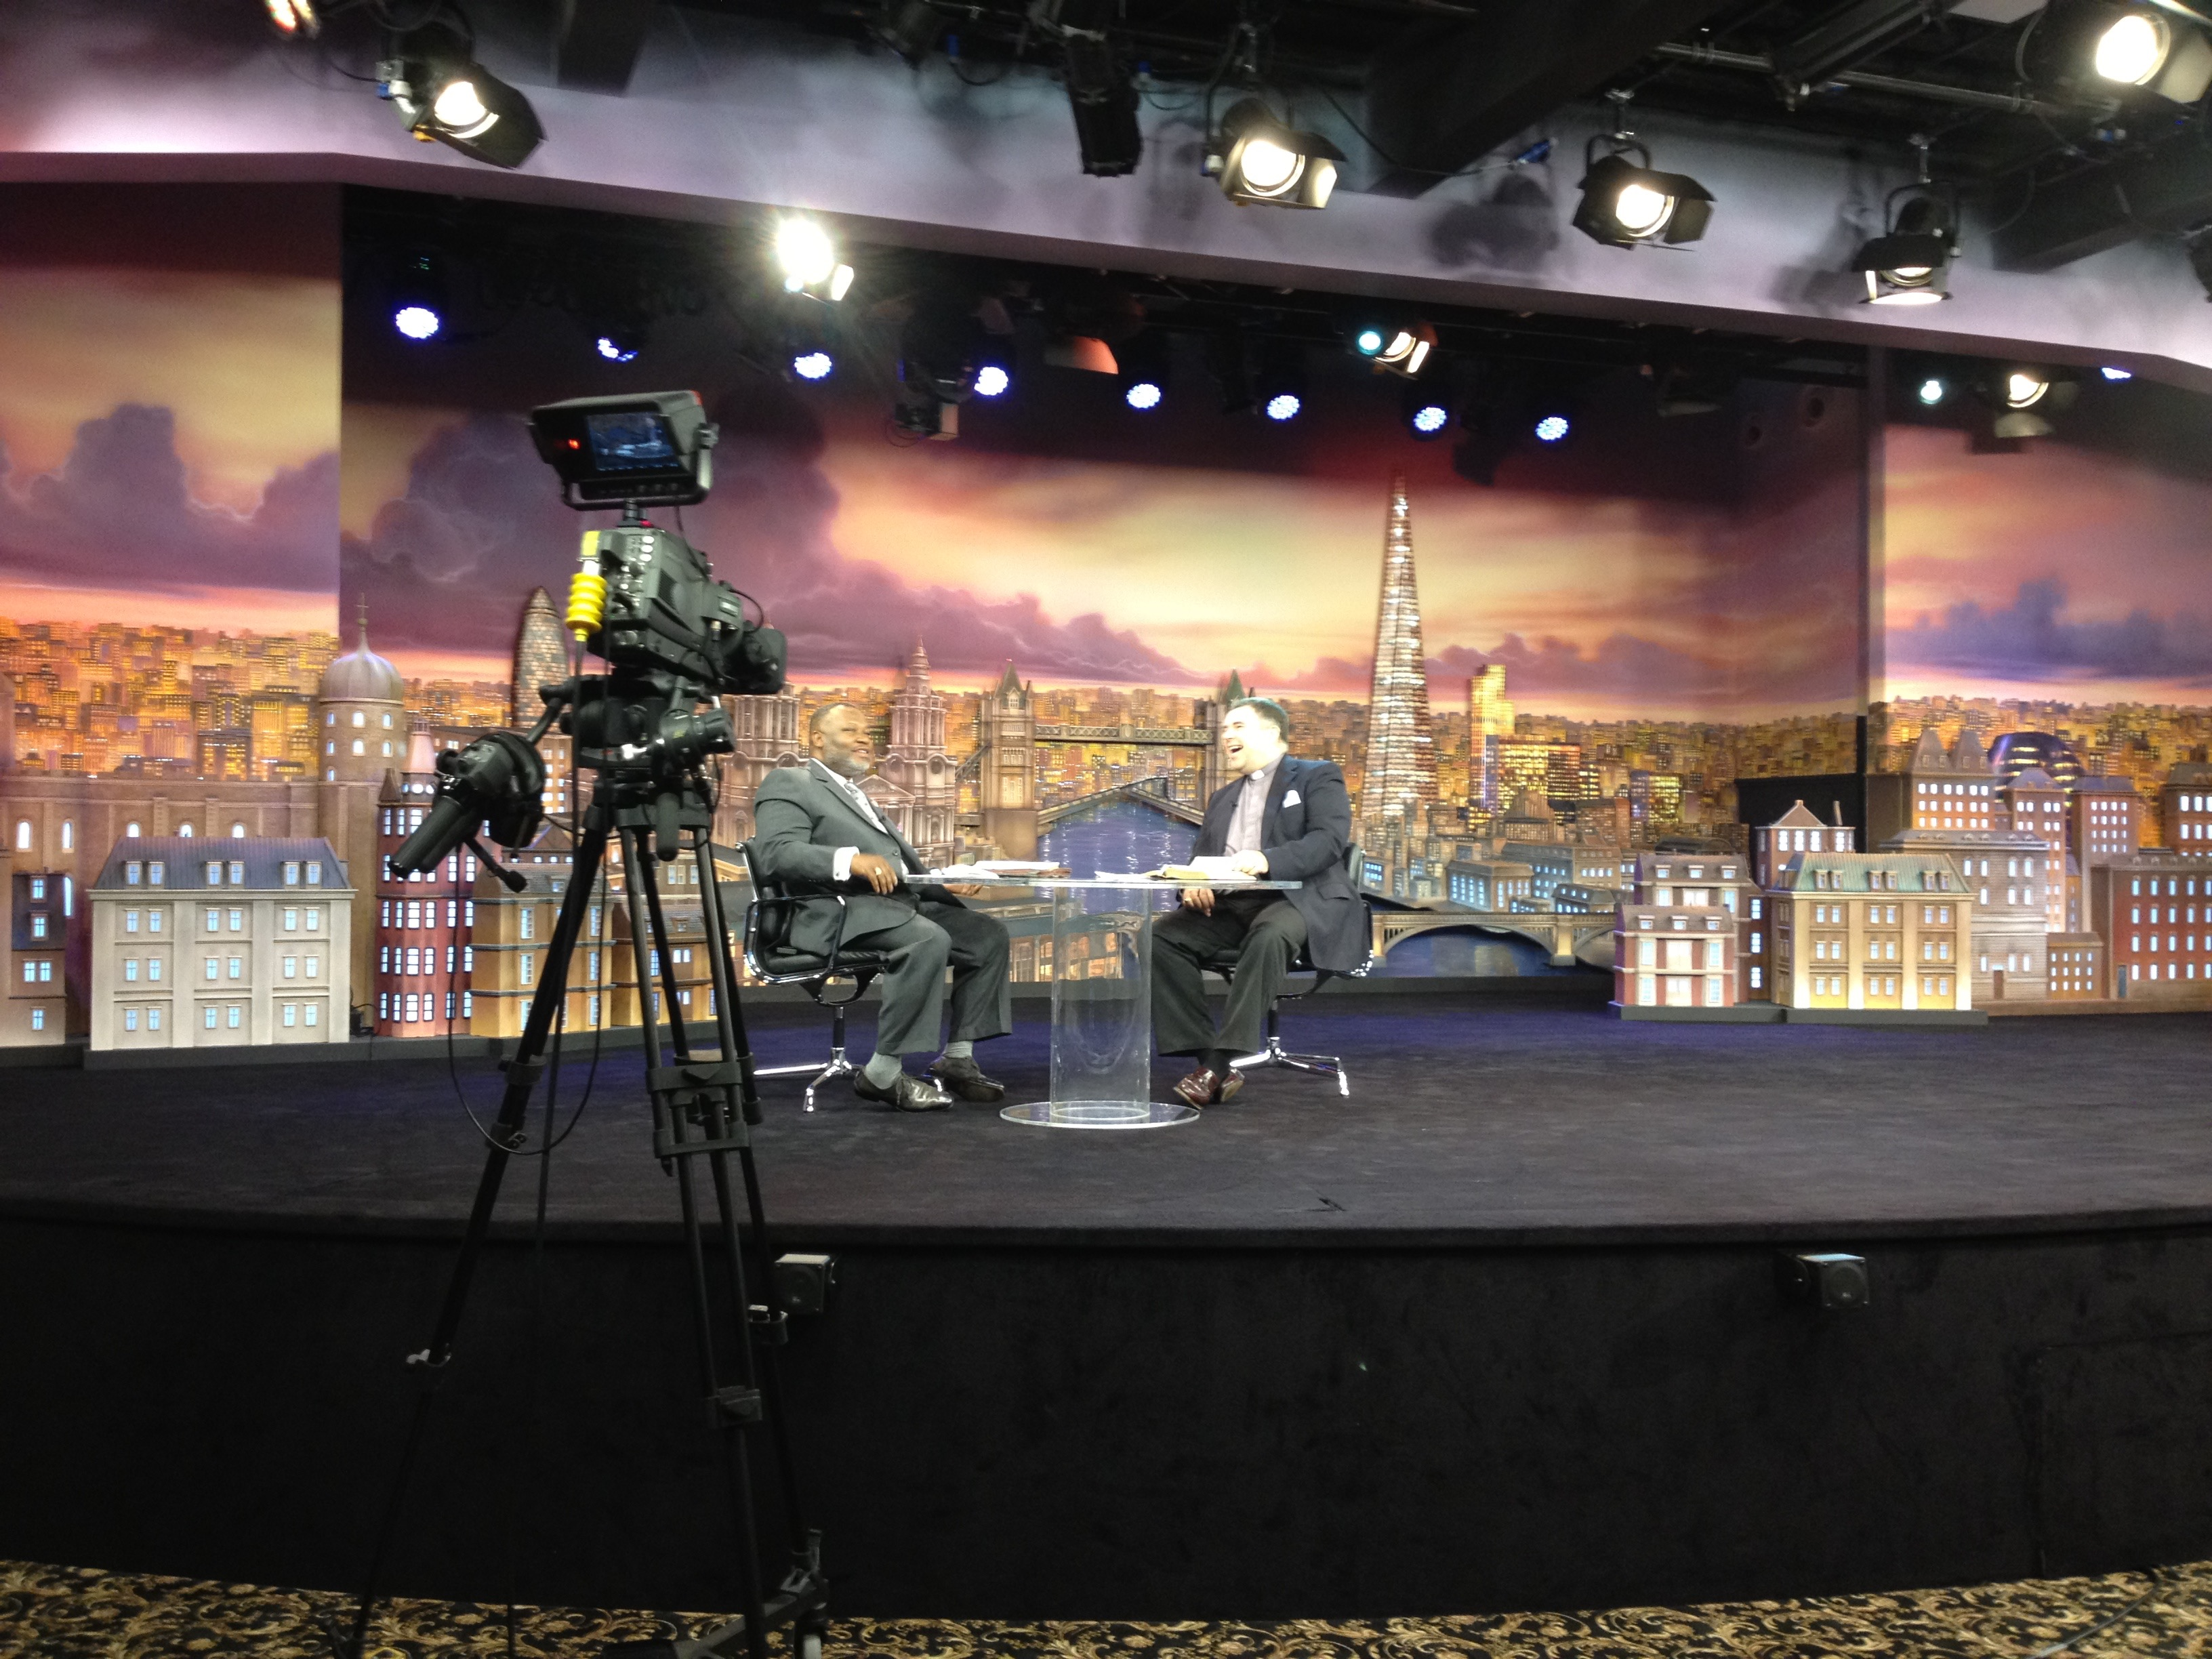 Bishop Steven filming at TBN studios London